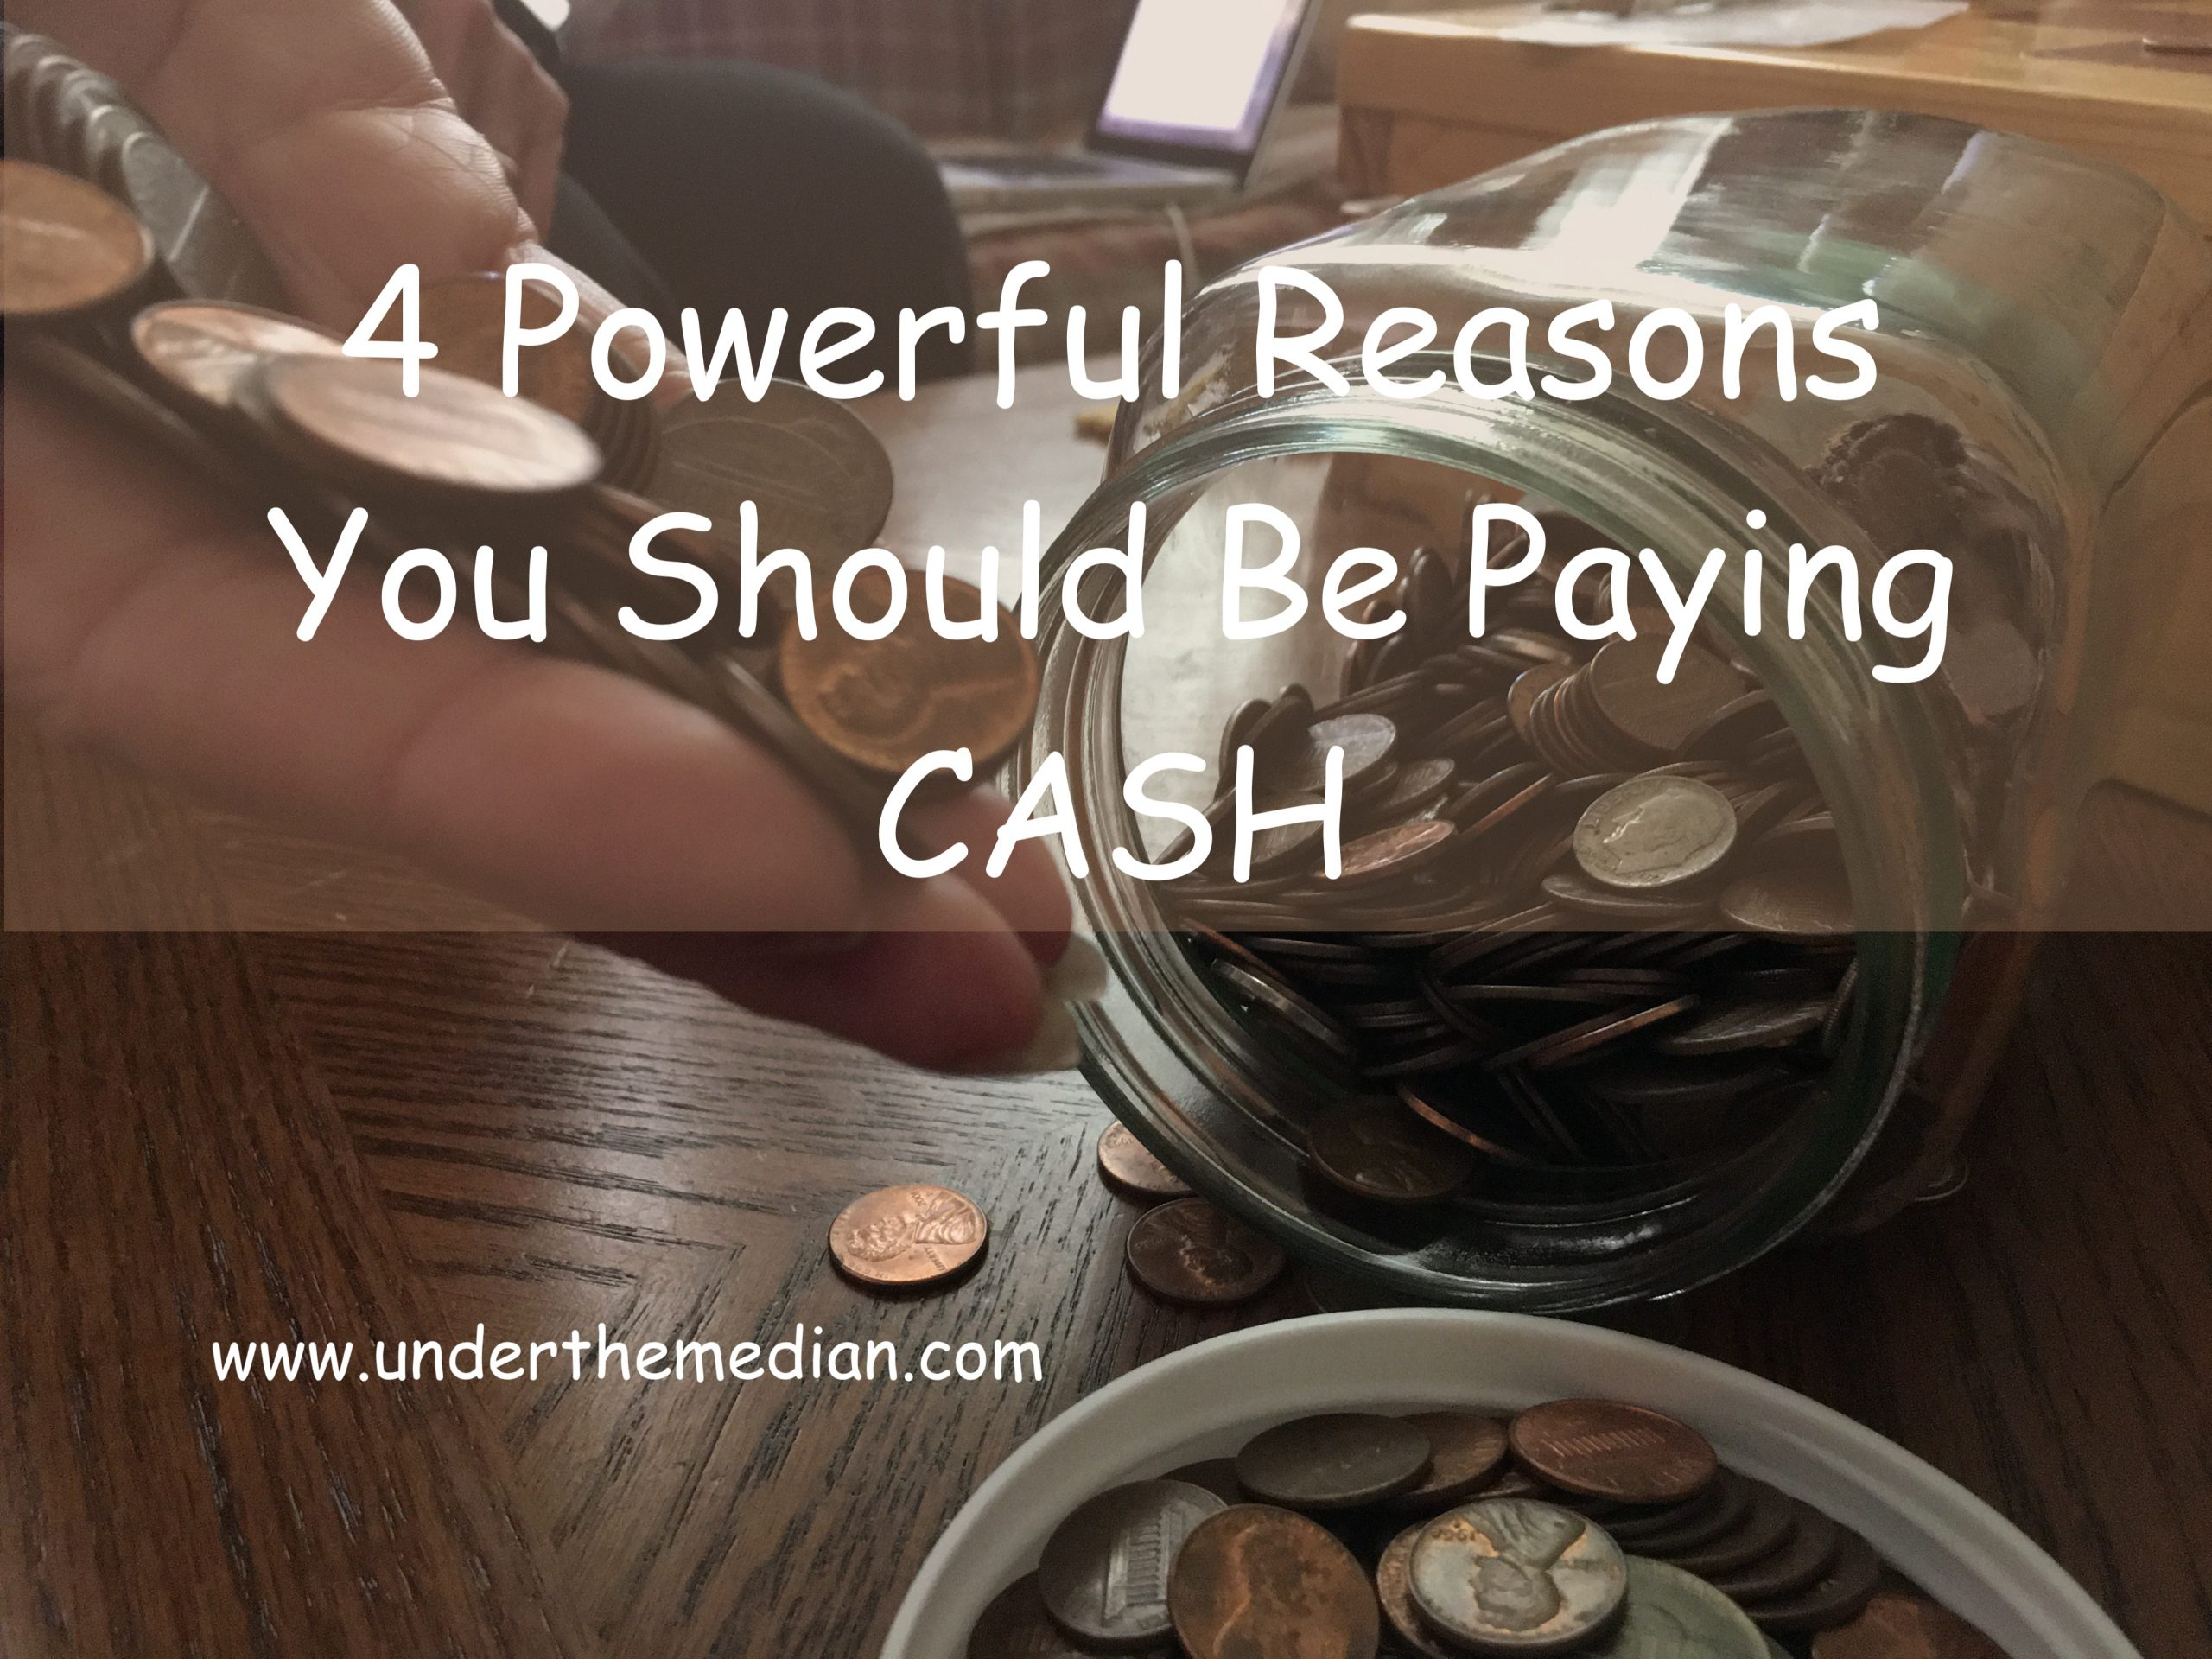 4 Powerful Reasons You Should Be Spending Cash